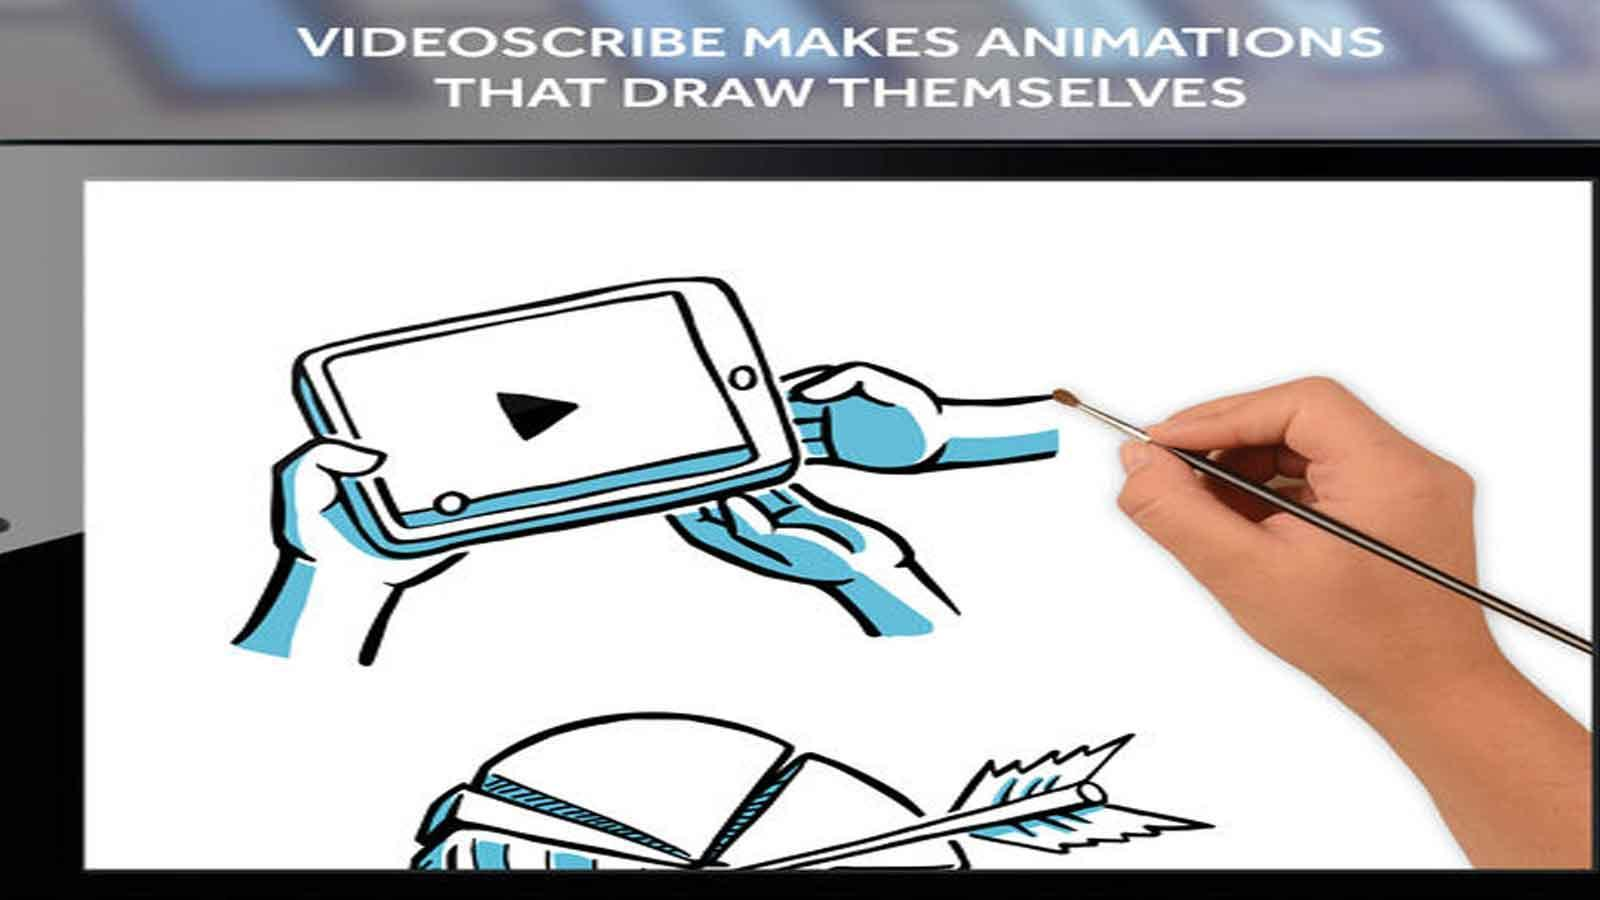 VideoScribe Pro App 2k18  for Android - APK Download